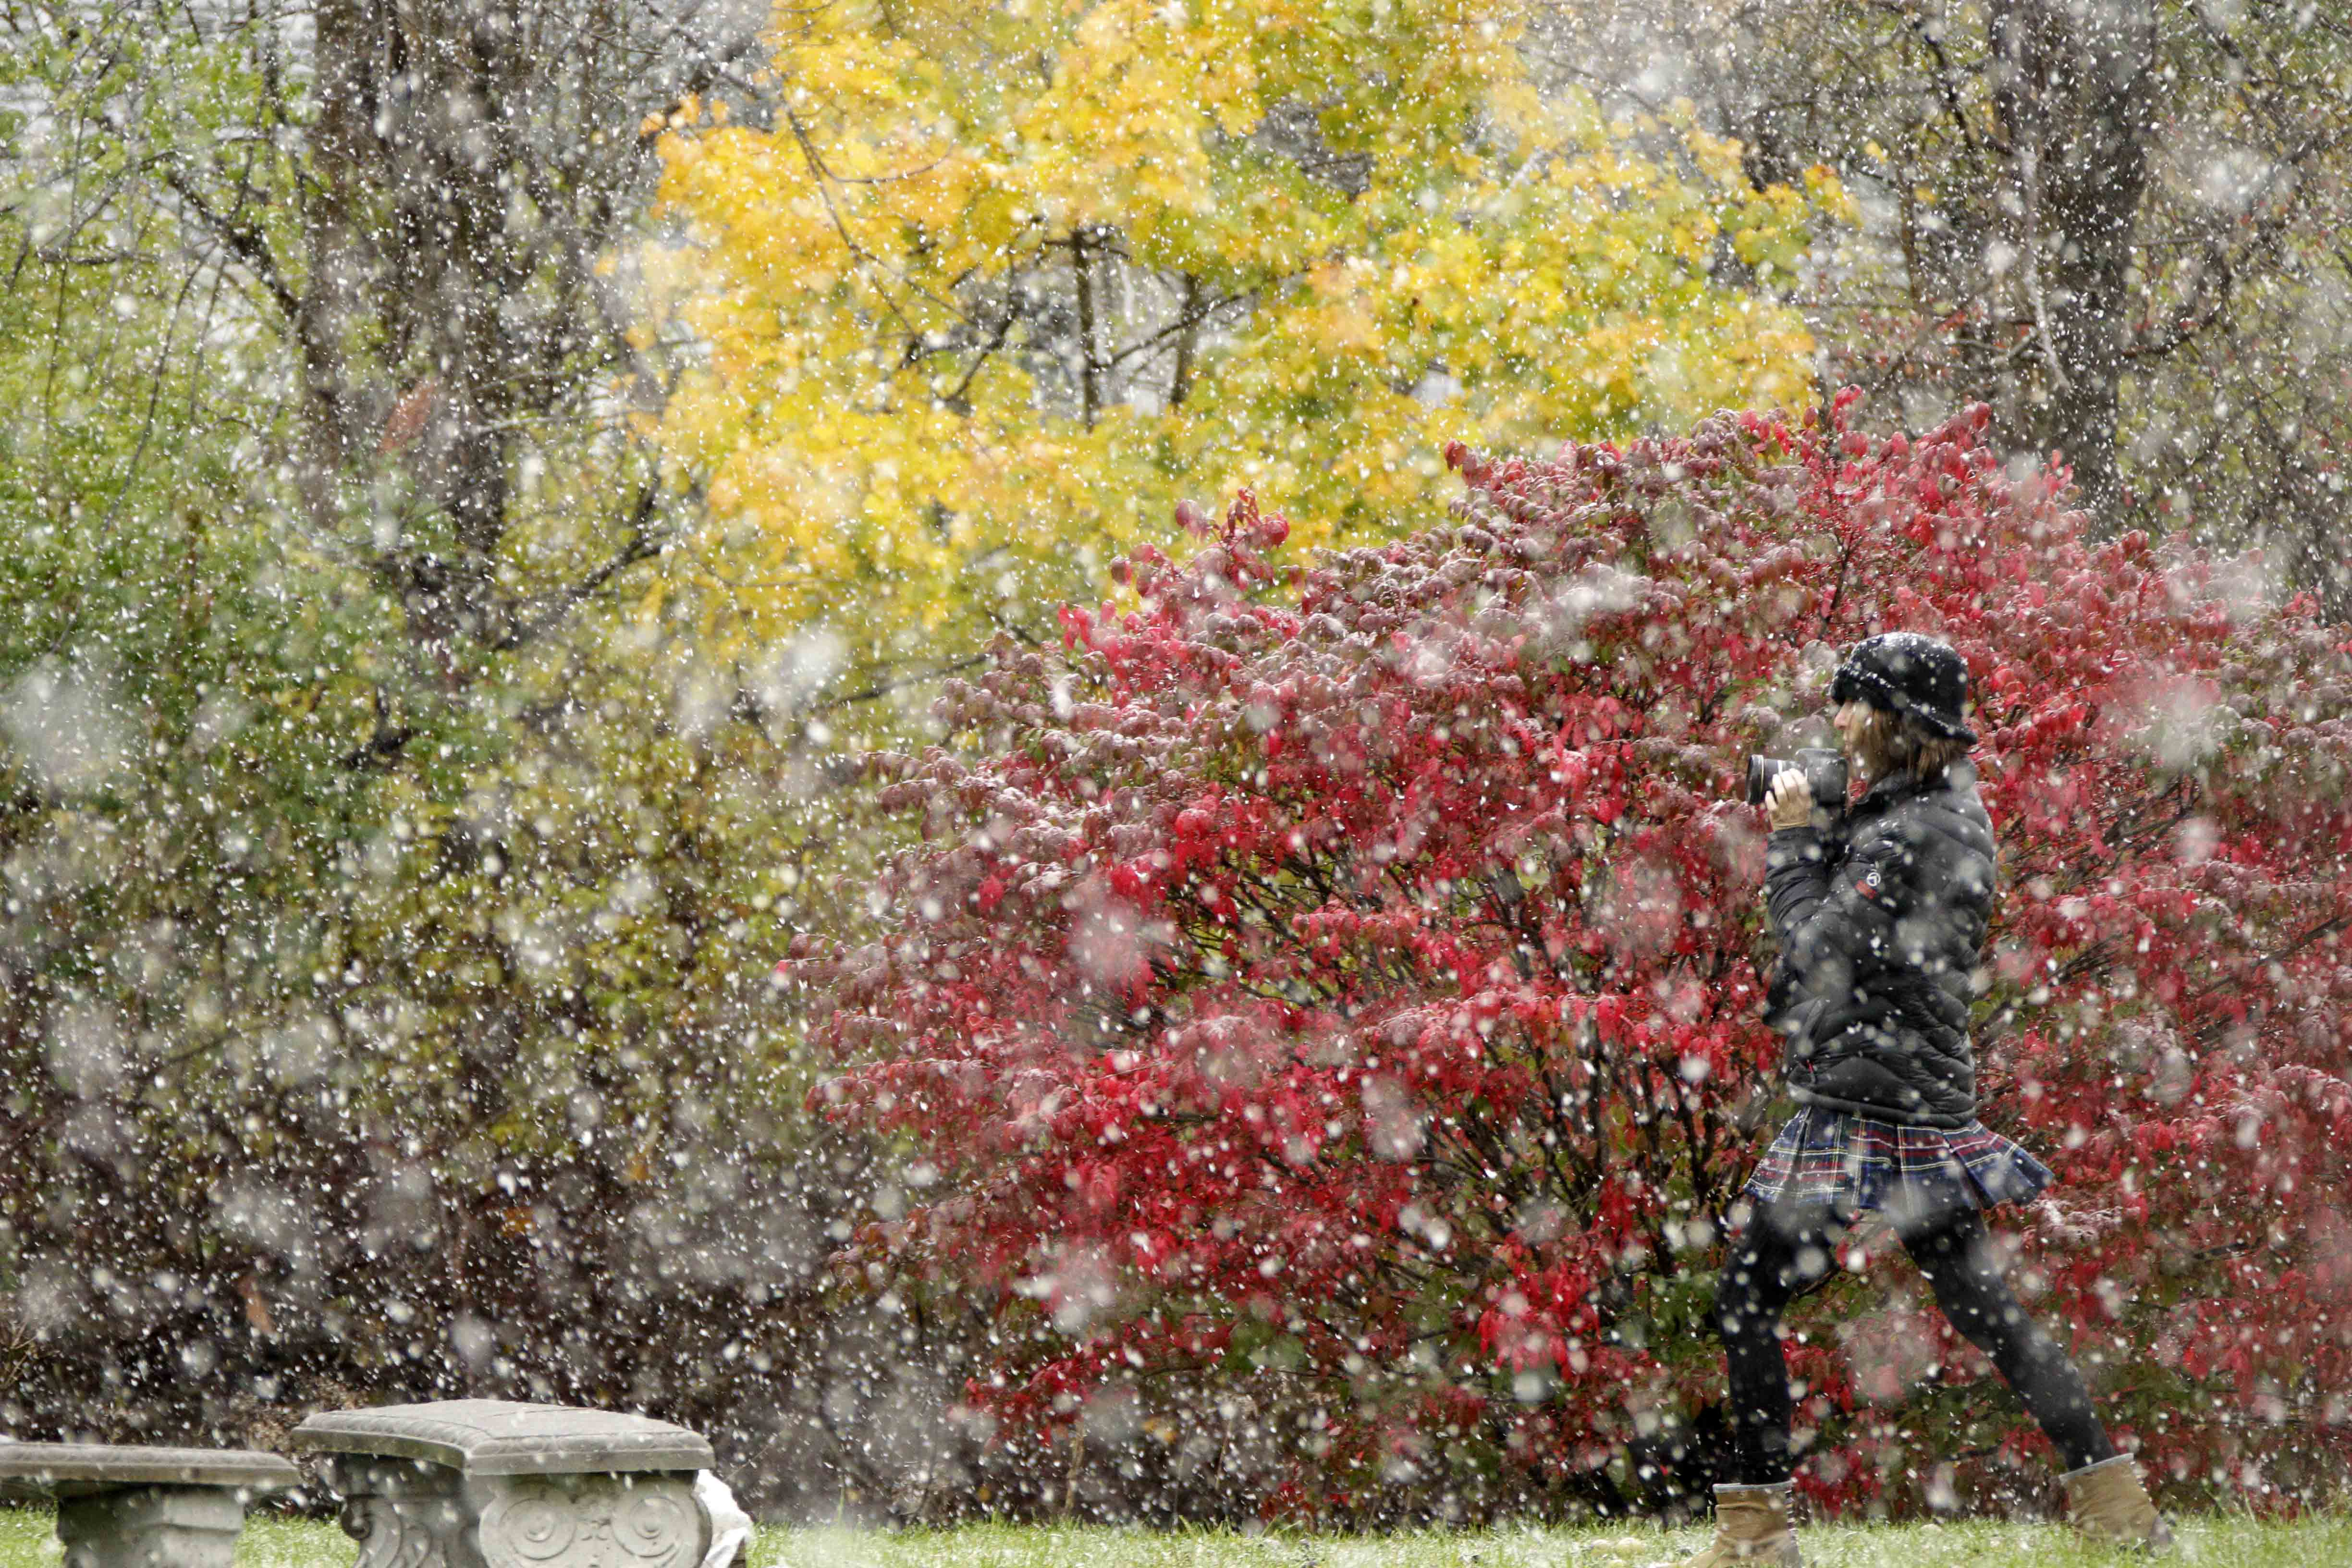 Jill Shapiro takes photographs of the falling snow at a park in Bellefonte, Pa., Saturday, Oct. 29, 2011.